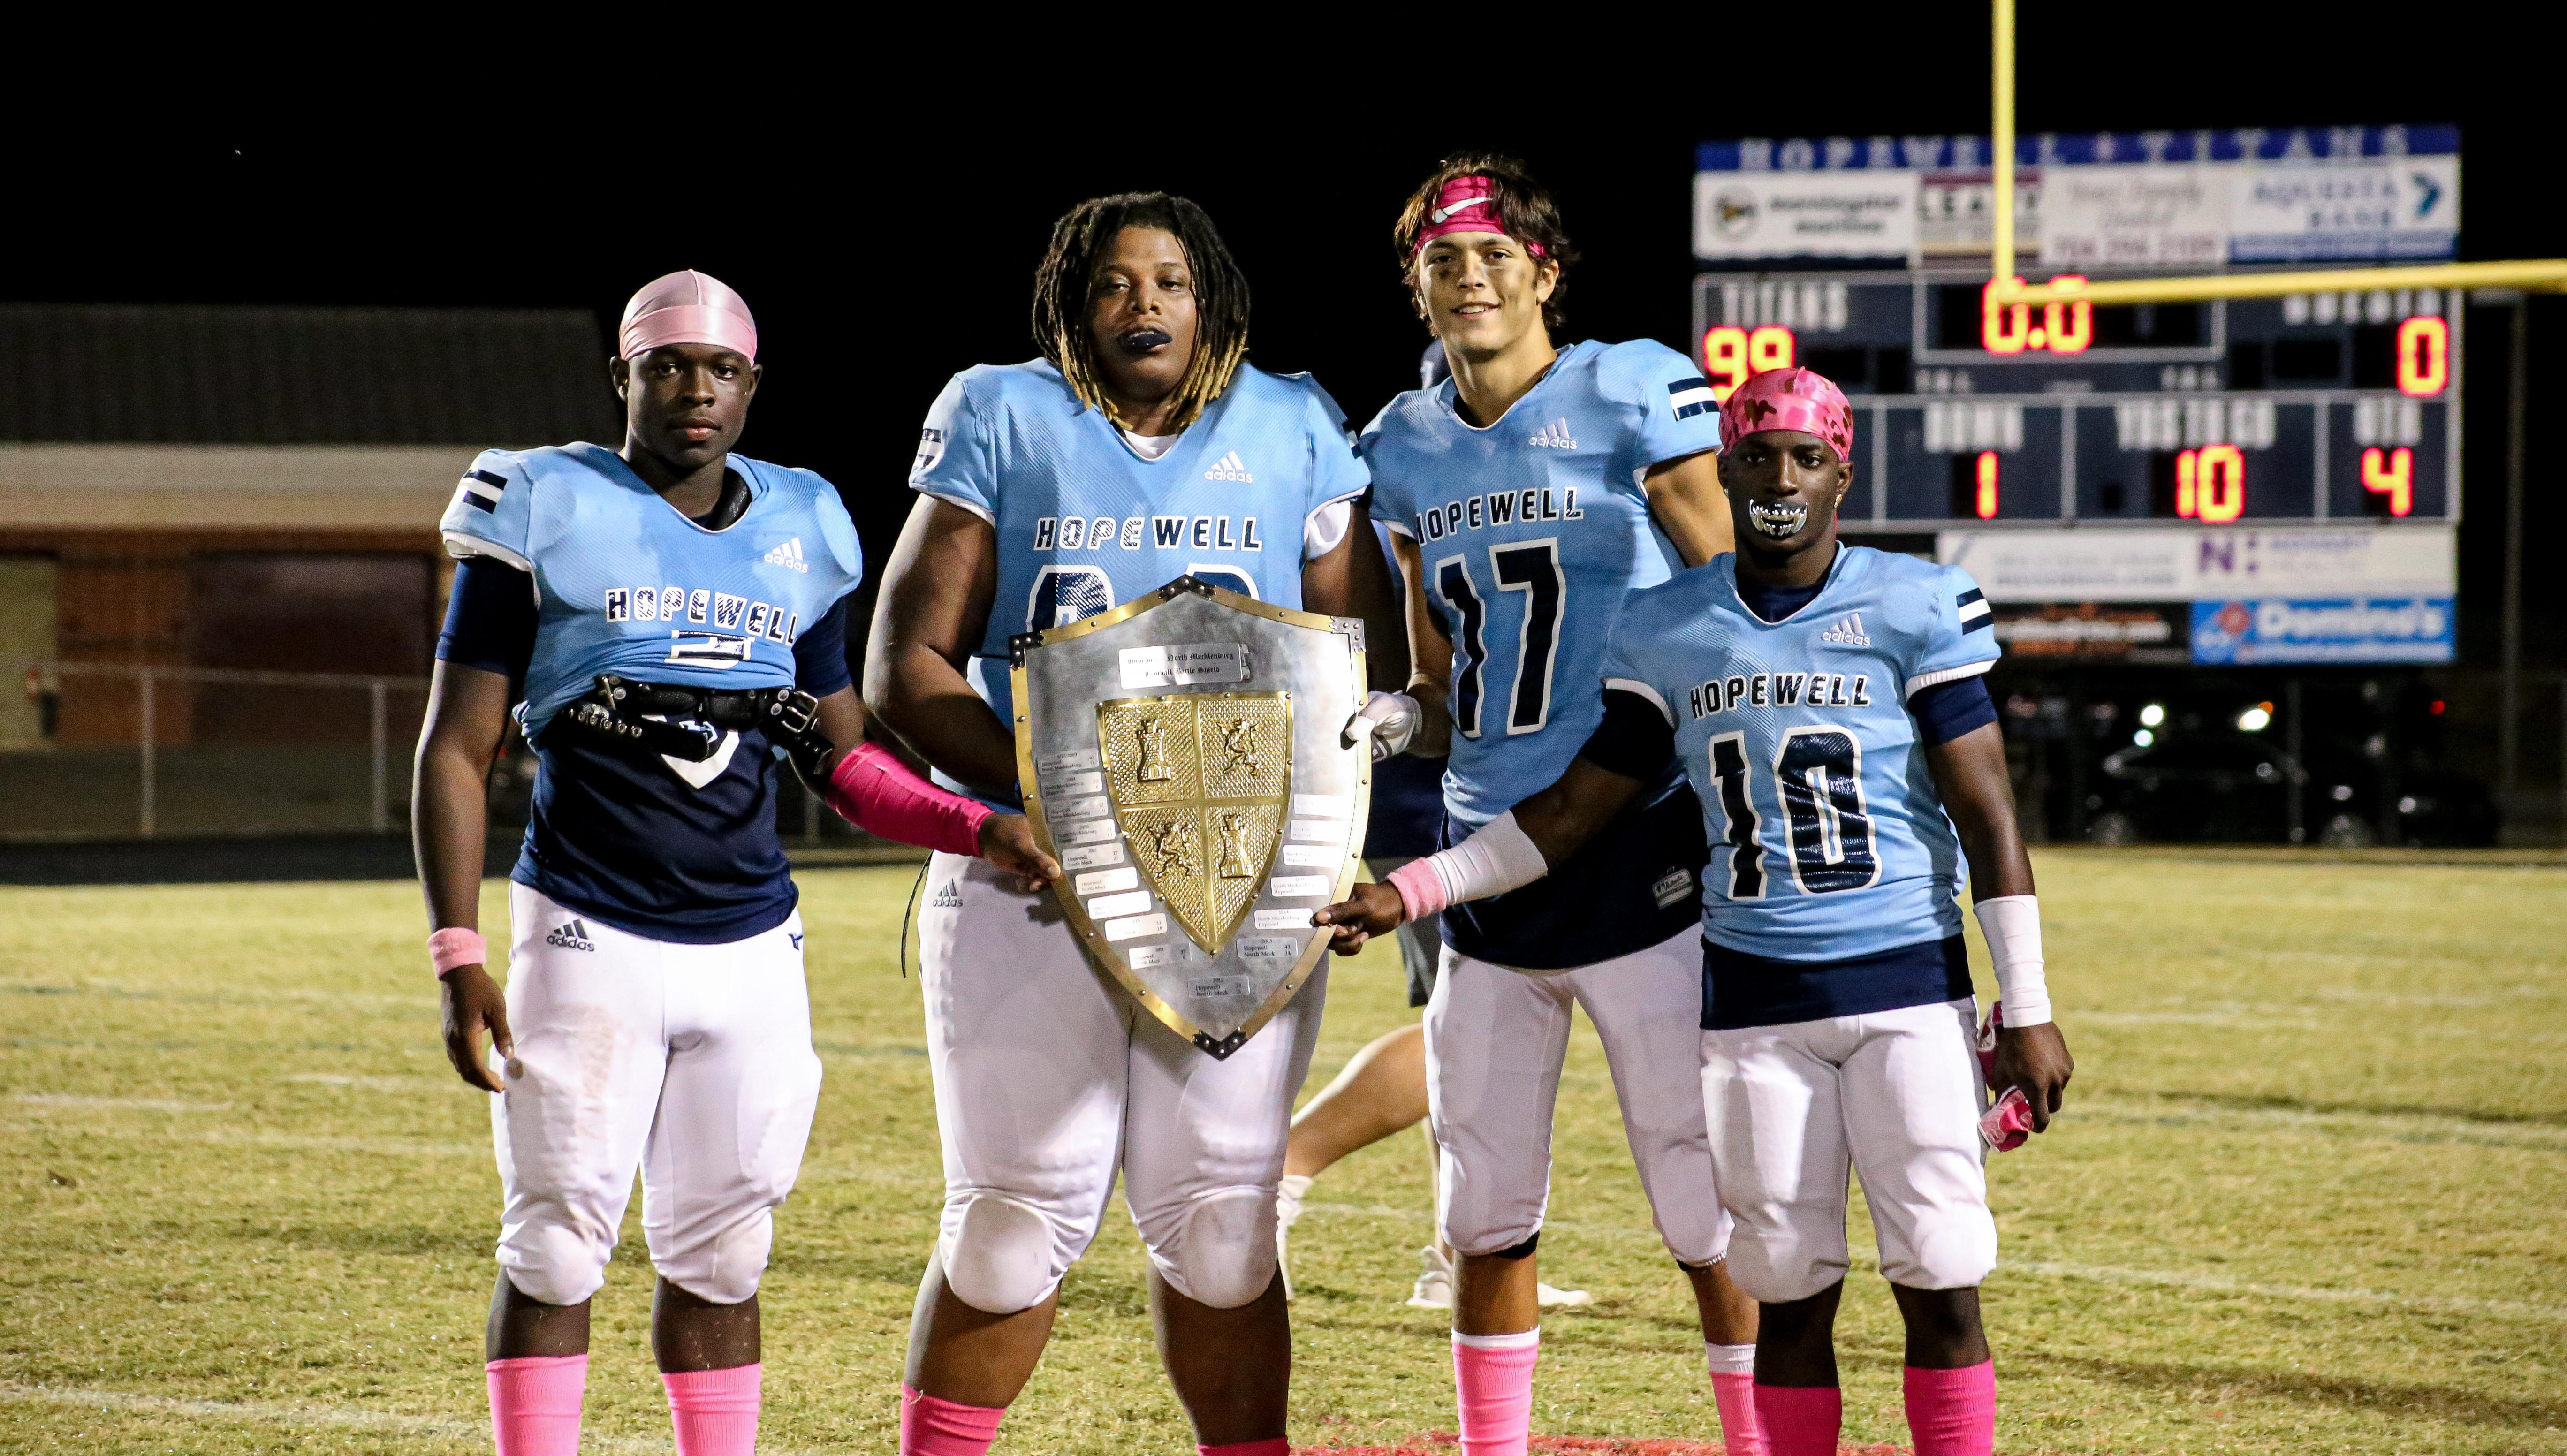 THANK YOU SENIORS OF C/O 2020... THE SHIELD IS BACK !!!